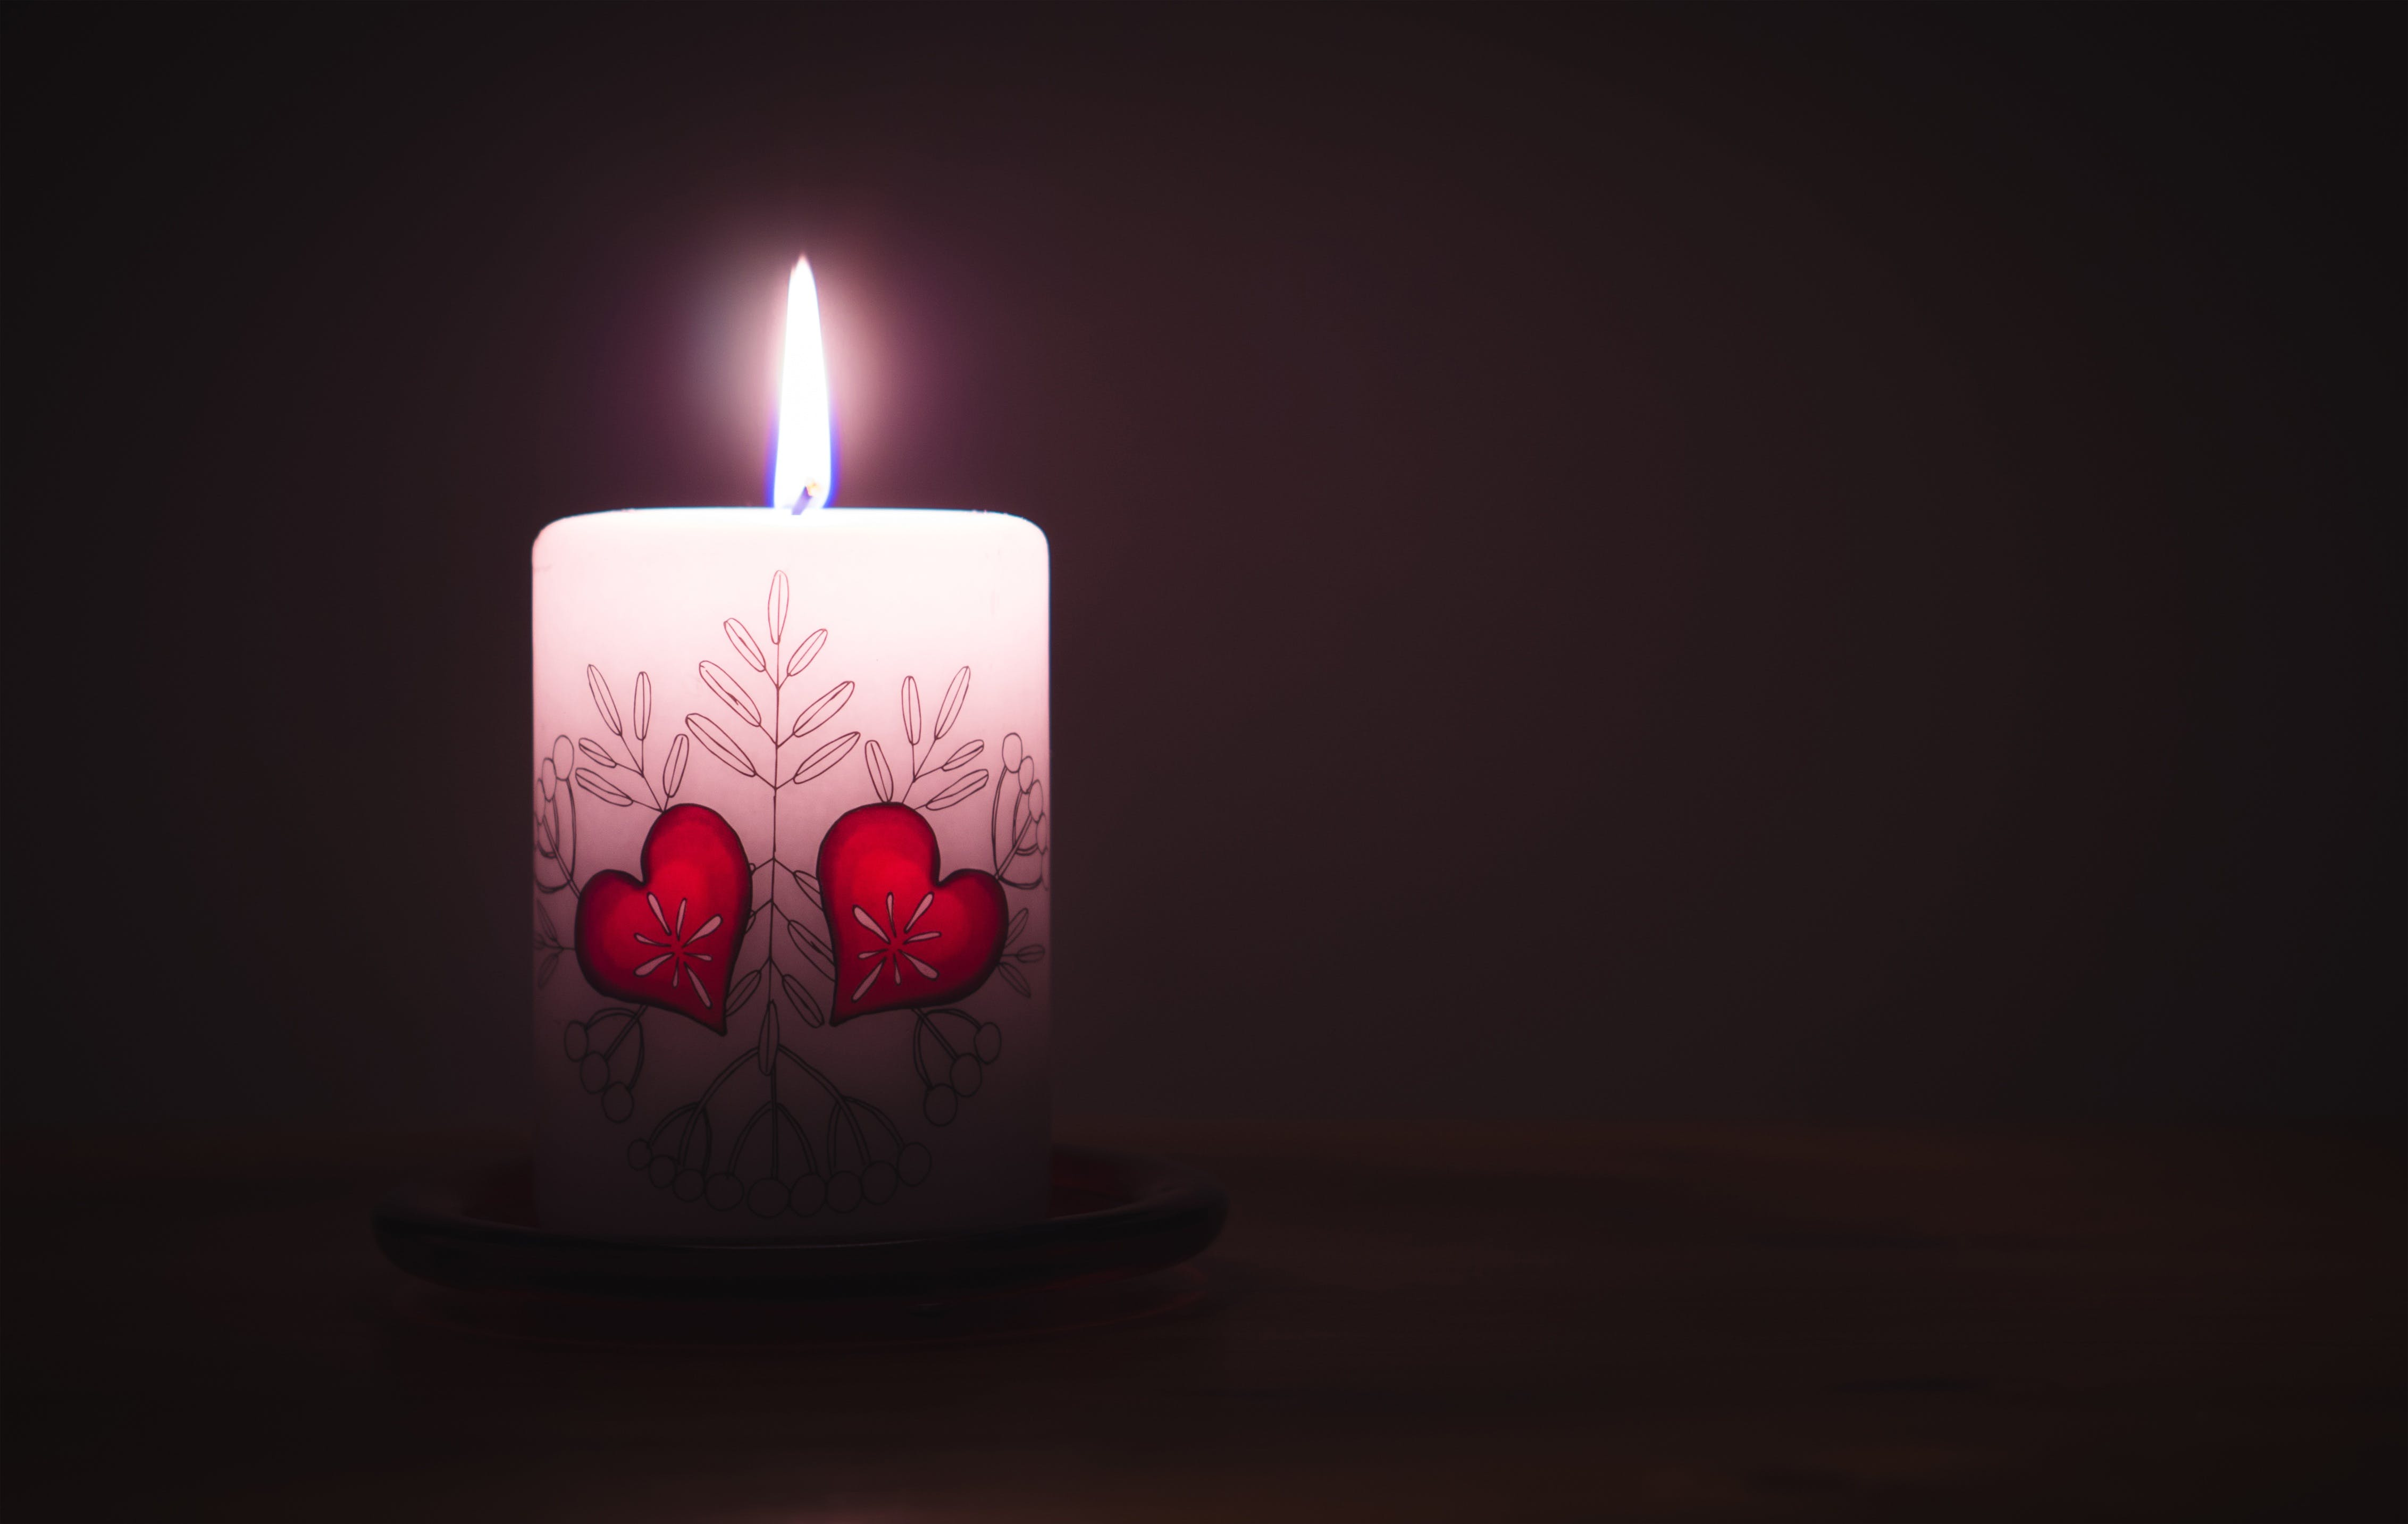 Close-up of Illuminated Candle Against Black Background